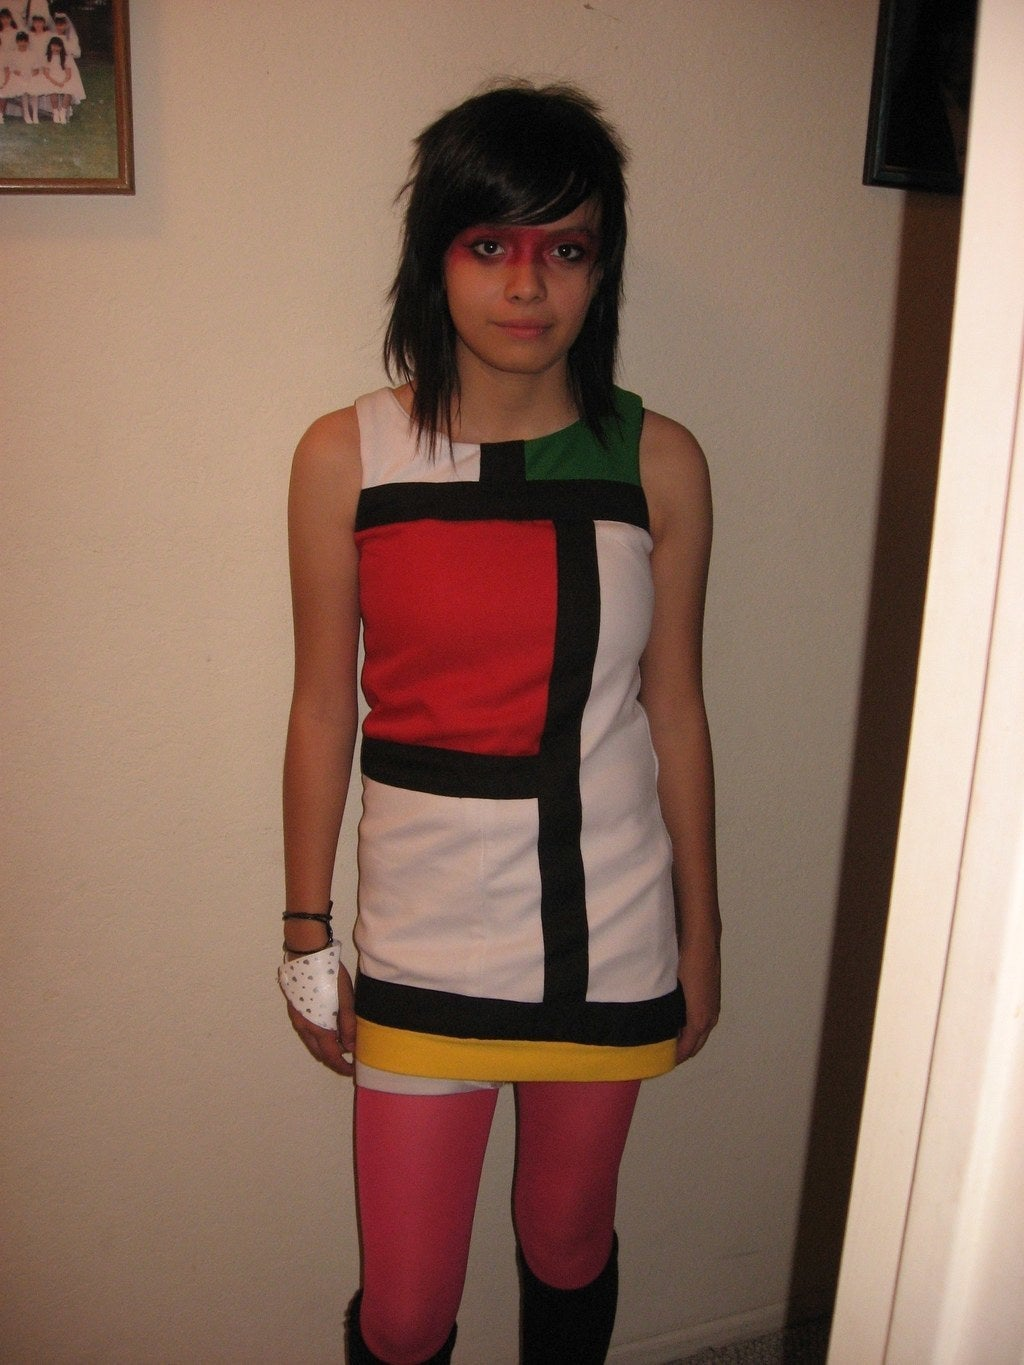 Cool Emo Halloween Costumes Halloween Makeup And Costumes